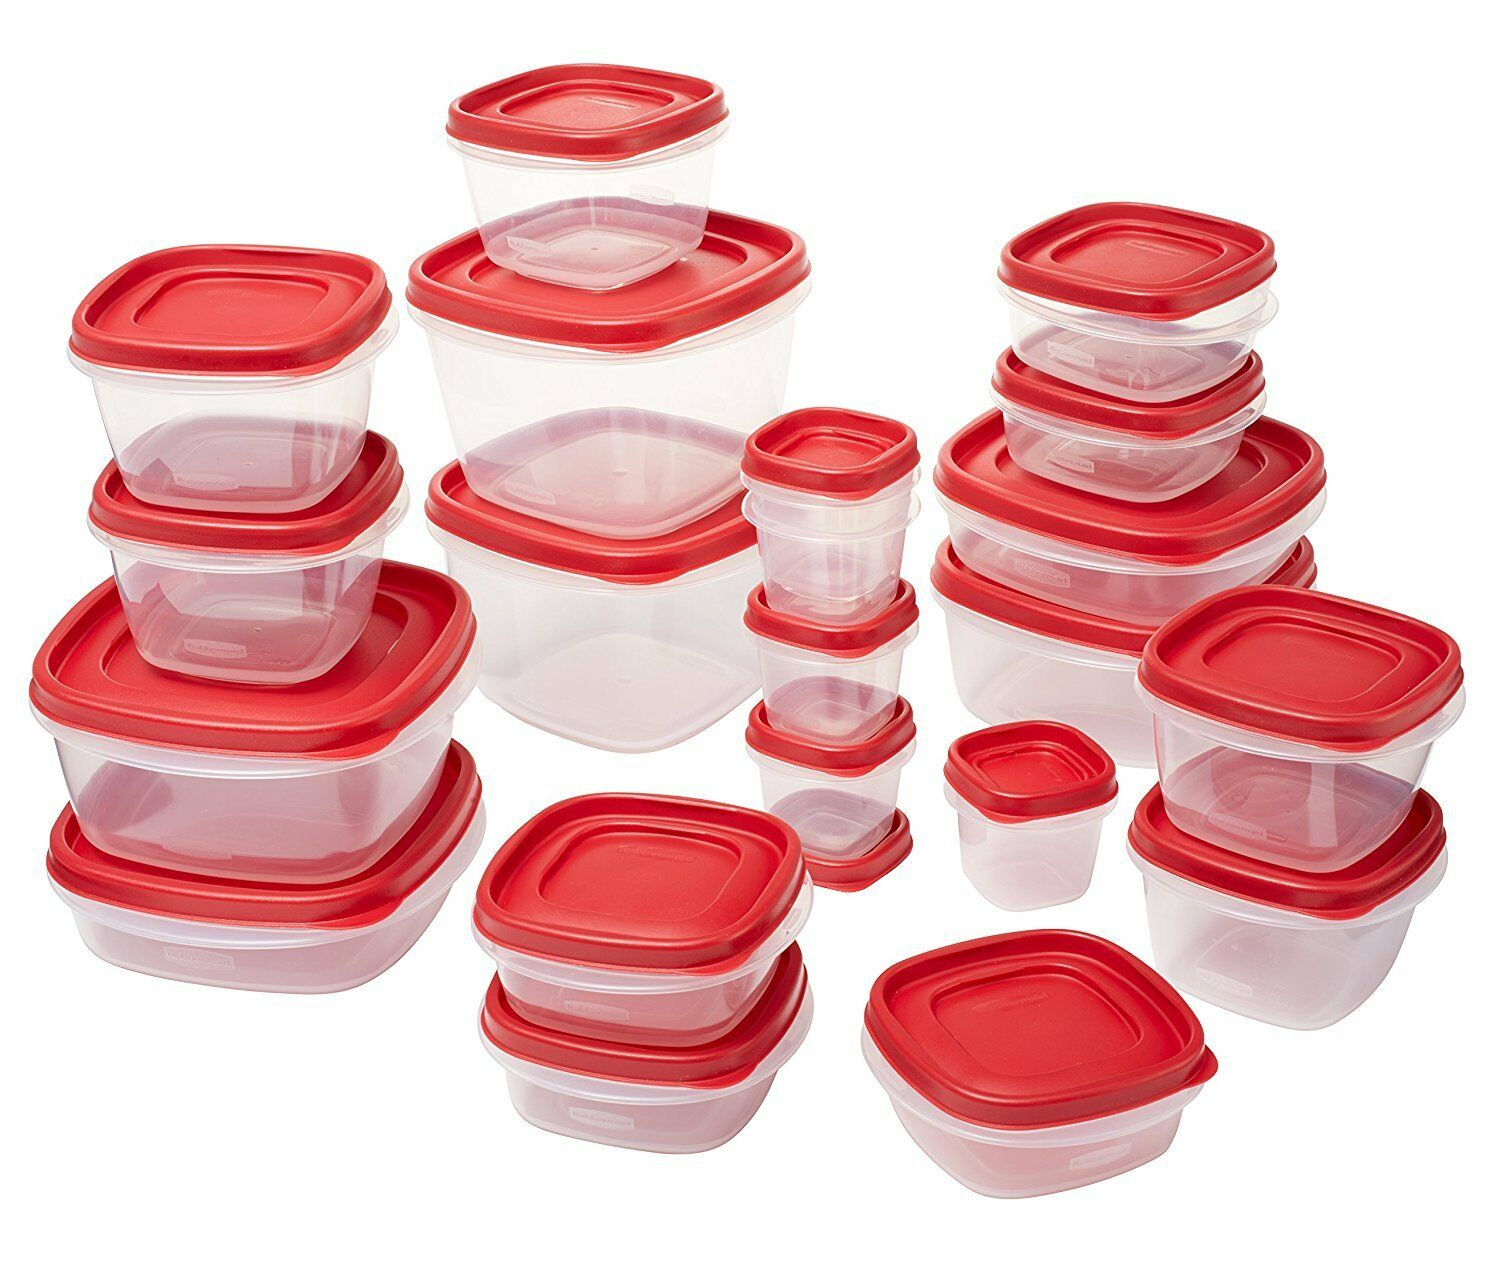 Rubbermaid Easy Find Lids Food Storage Containers 8 Sets